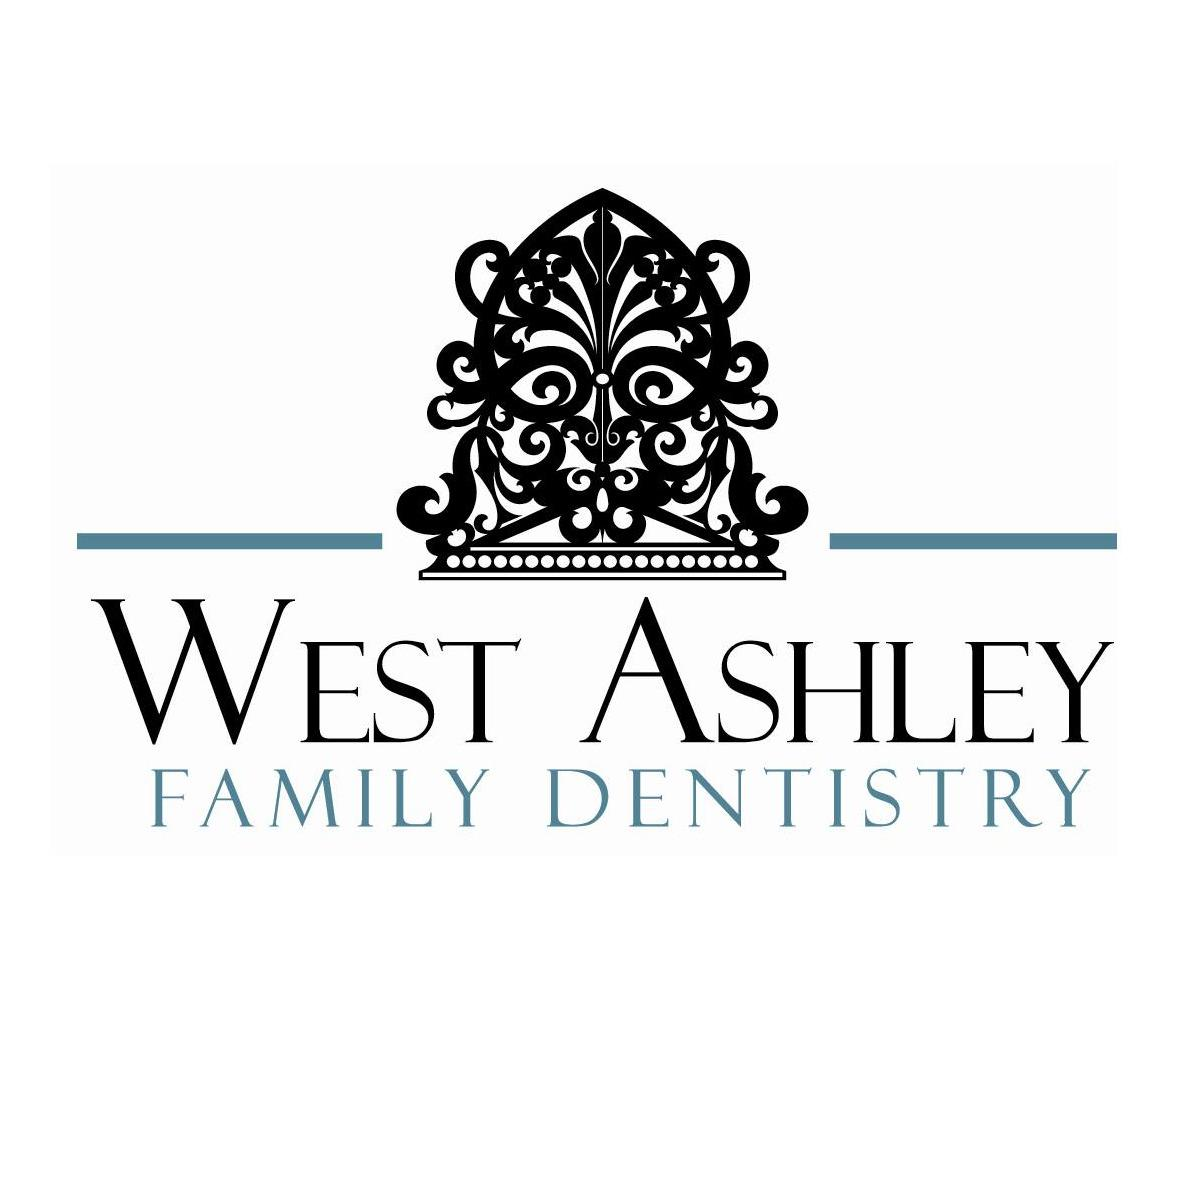 West Ashley Family Dentistry